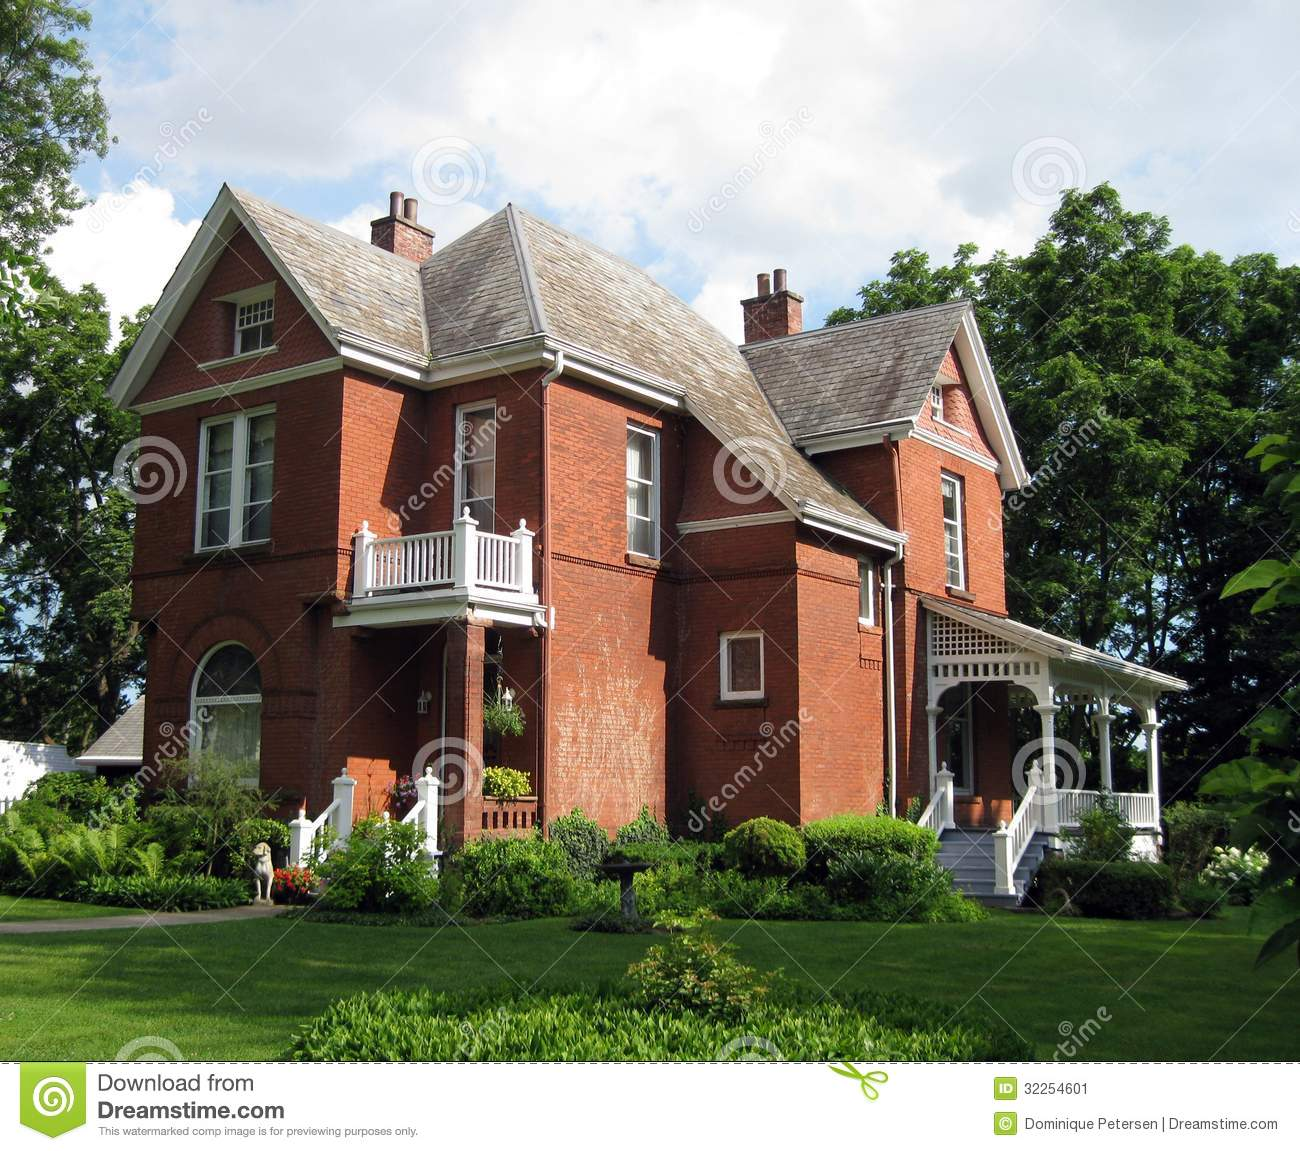 A Beautiful Old Red Brick Century Home With Side Porch And Second Story Balcony And Lush Landscaping